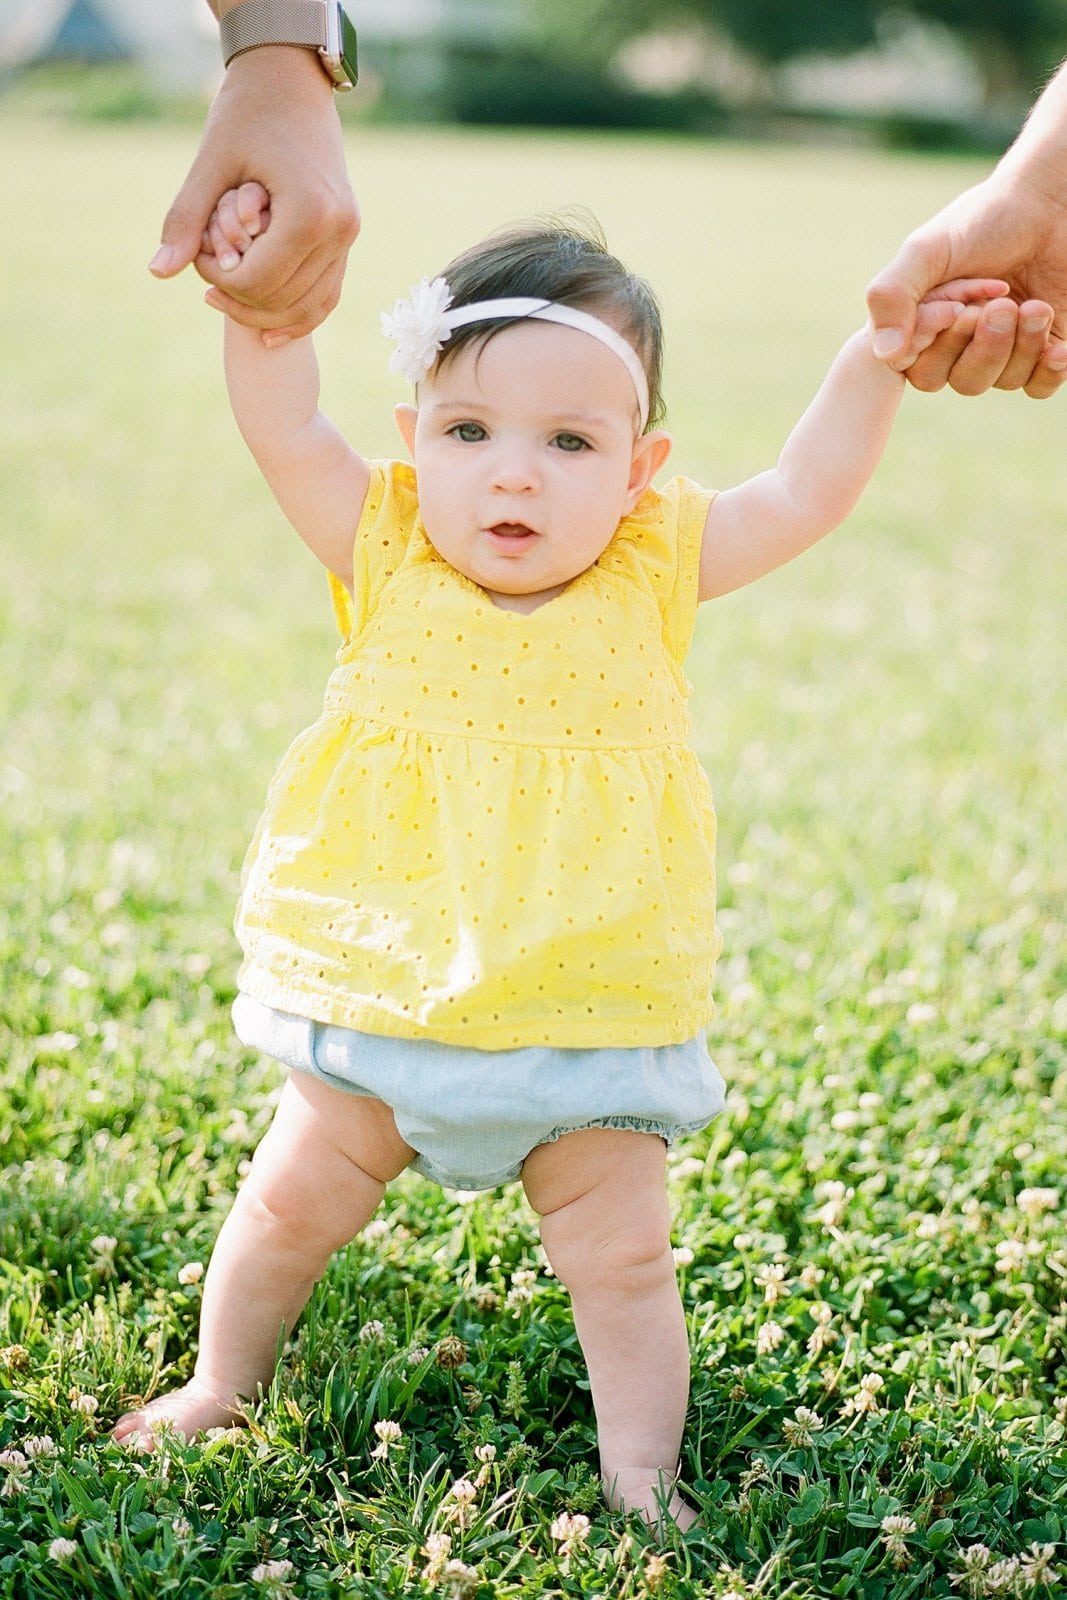 Little girl holding her parents hands while standing in grass wearing a yellow top